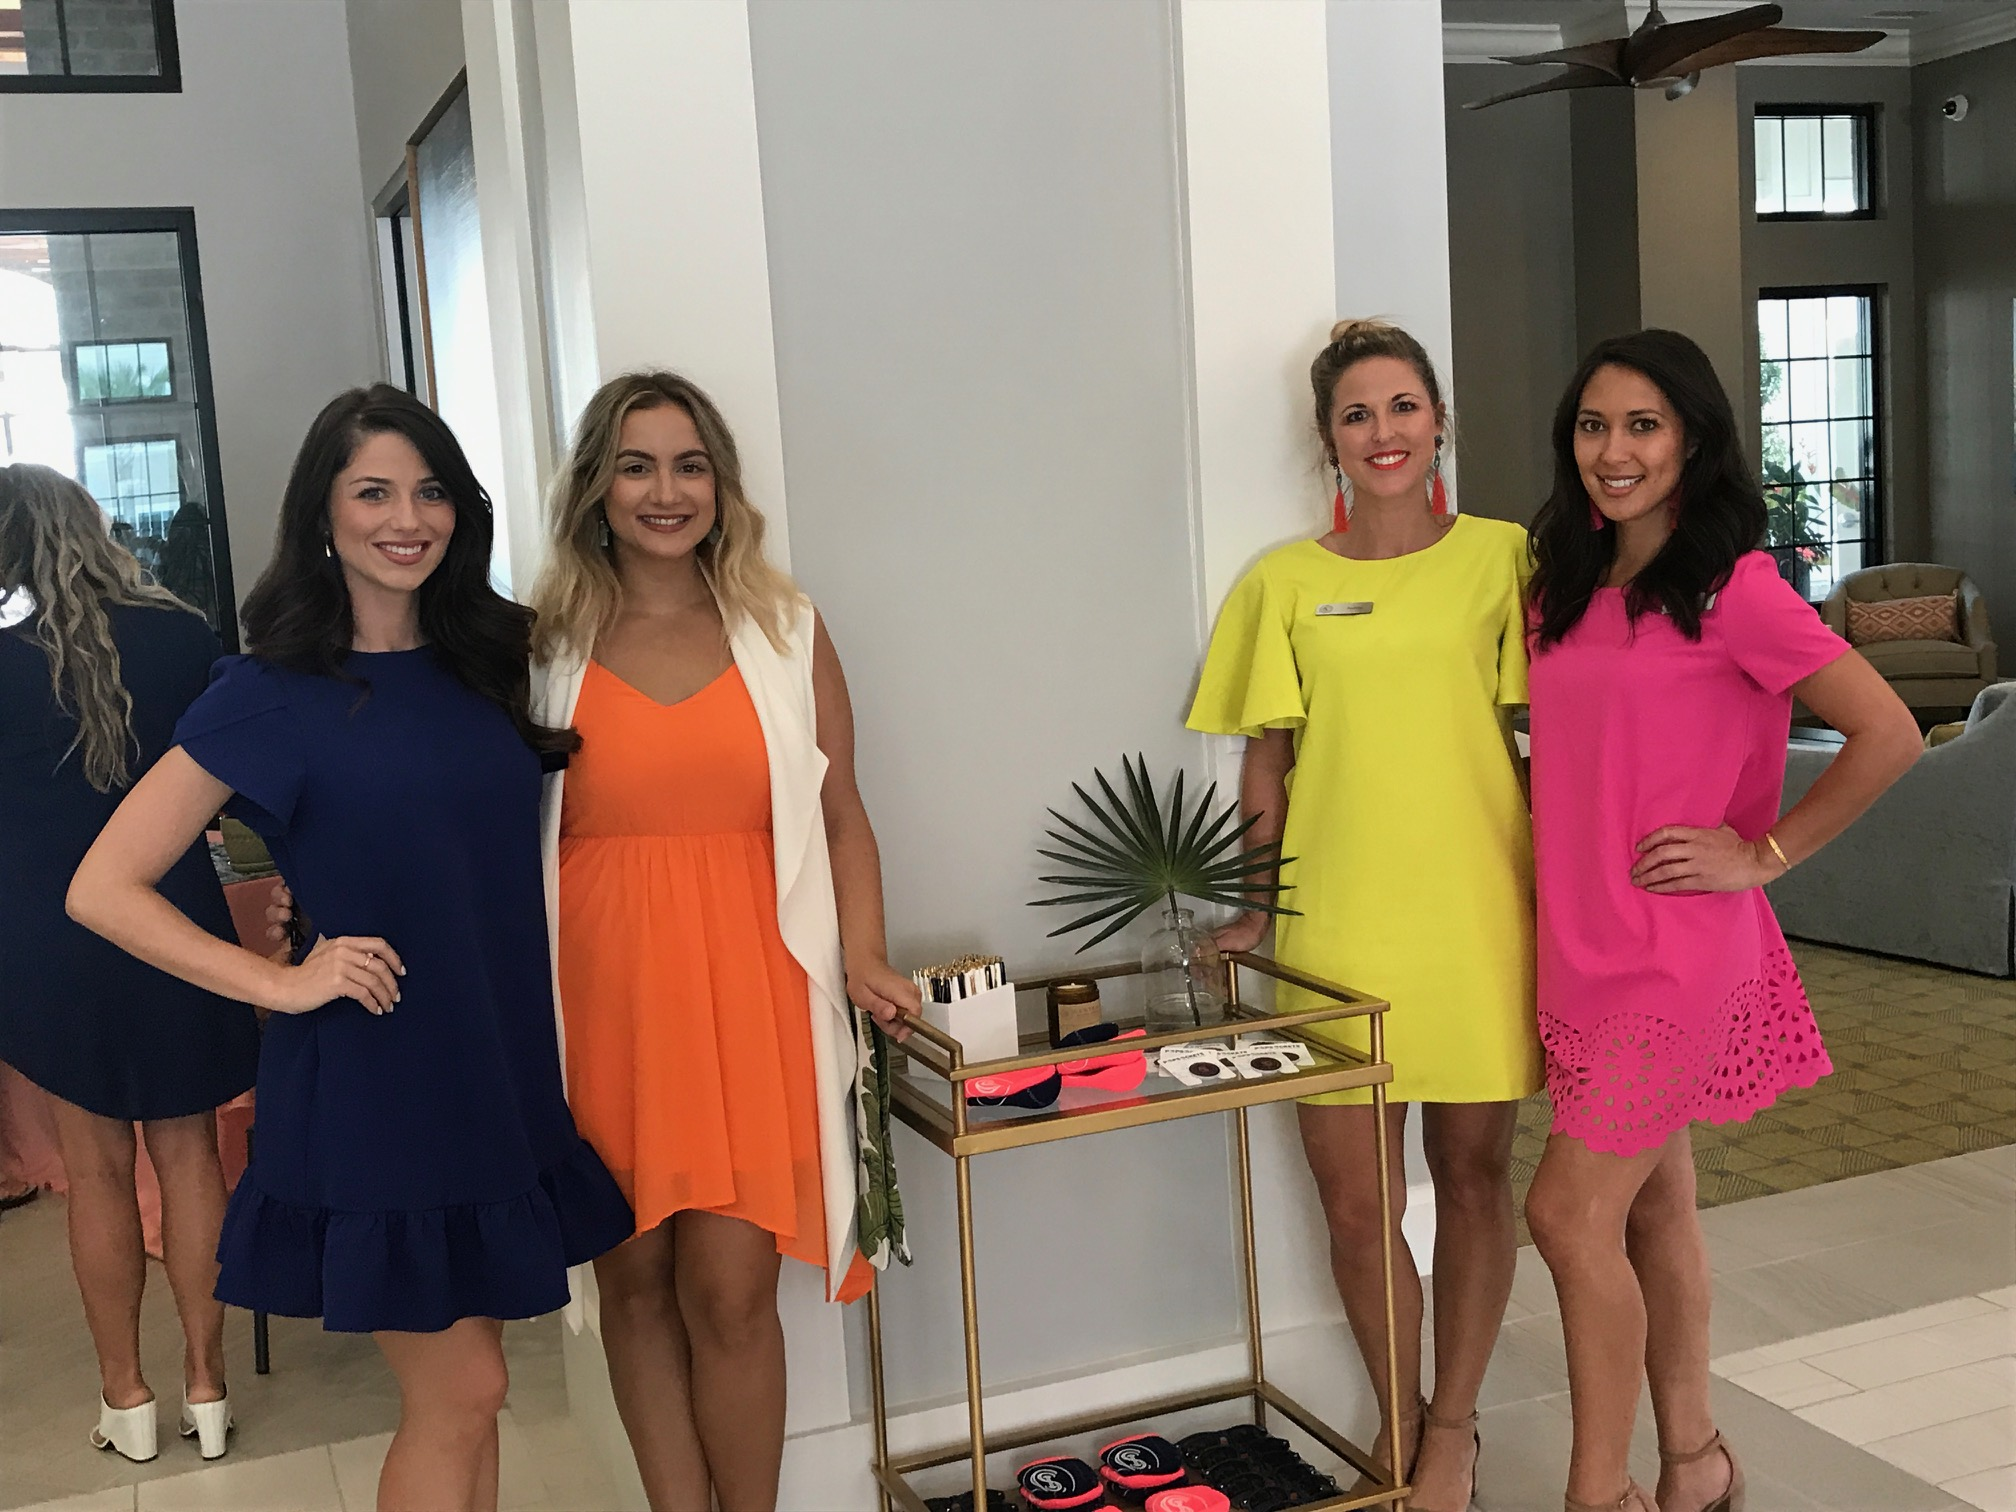 Representing Central Island Square, a sponsor and host of the event, were Meagan Pastorchik, Alexia Kakazioti, Ashley Venable, and Demi Tiqui.